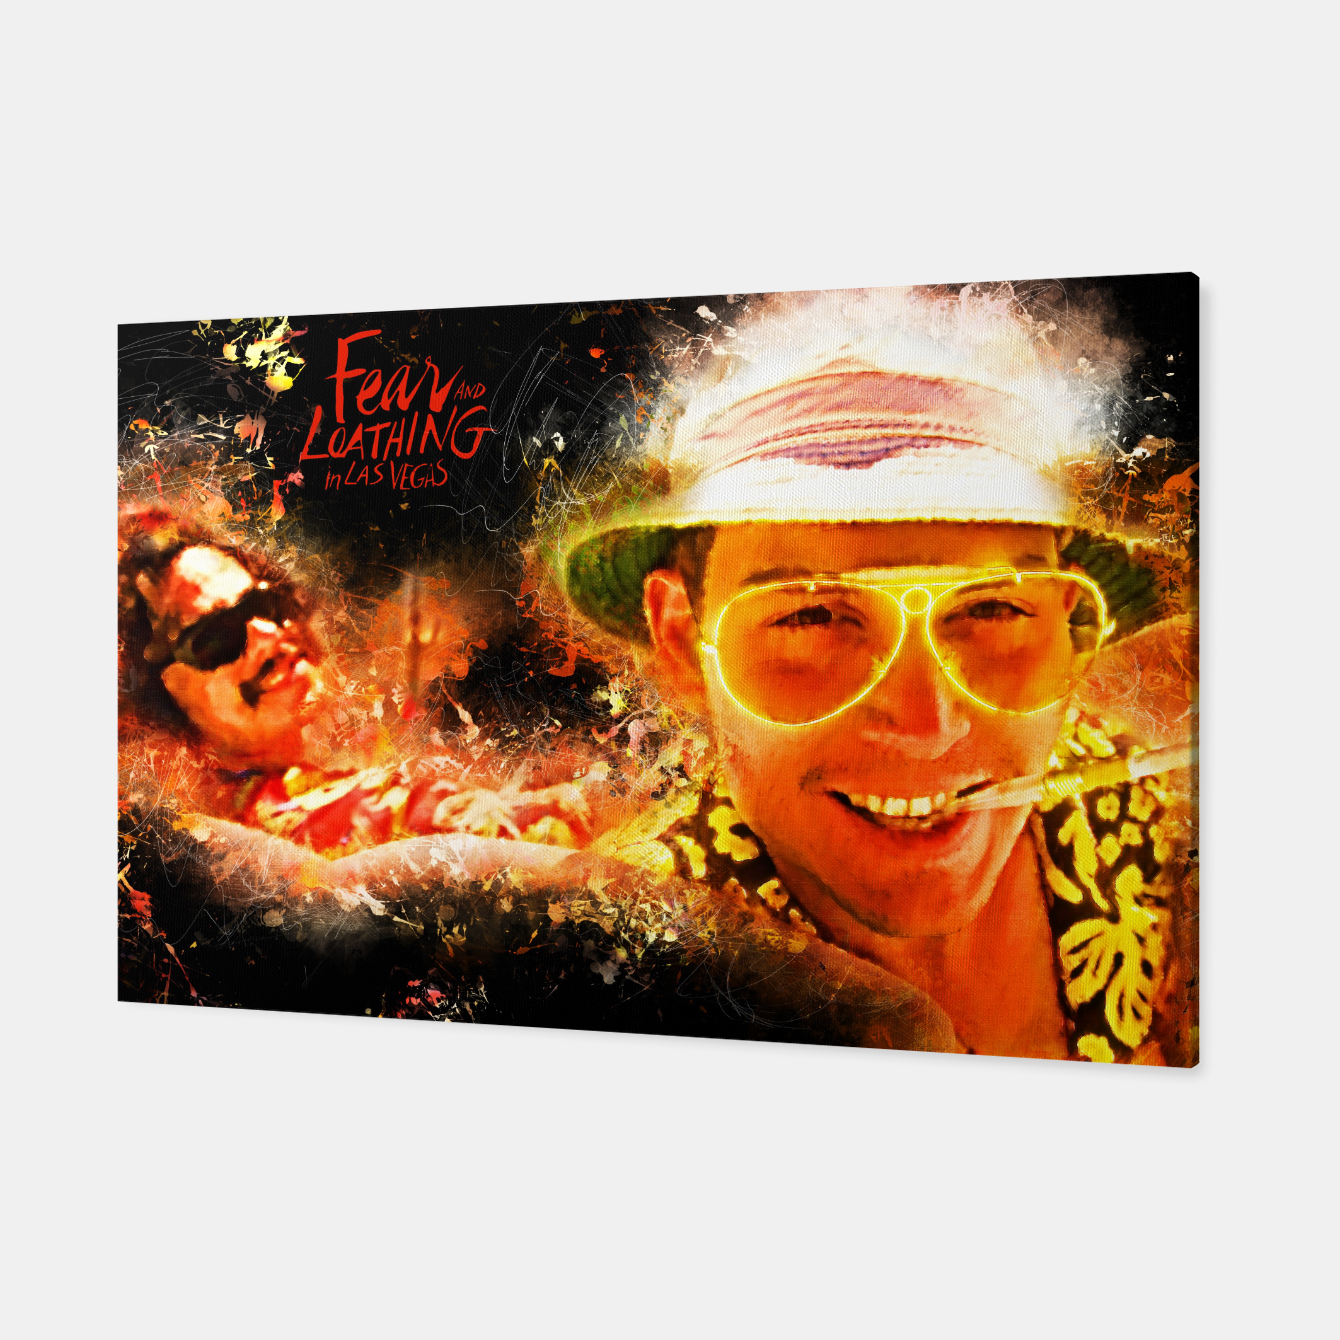 b9a060737afb Fear and Loathing in Las Vegas - Alternative Movie Poster Canvas, Live  Heroes